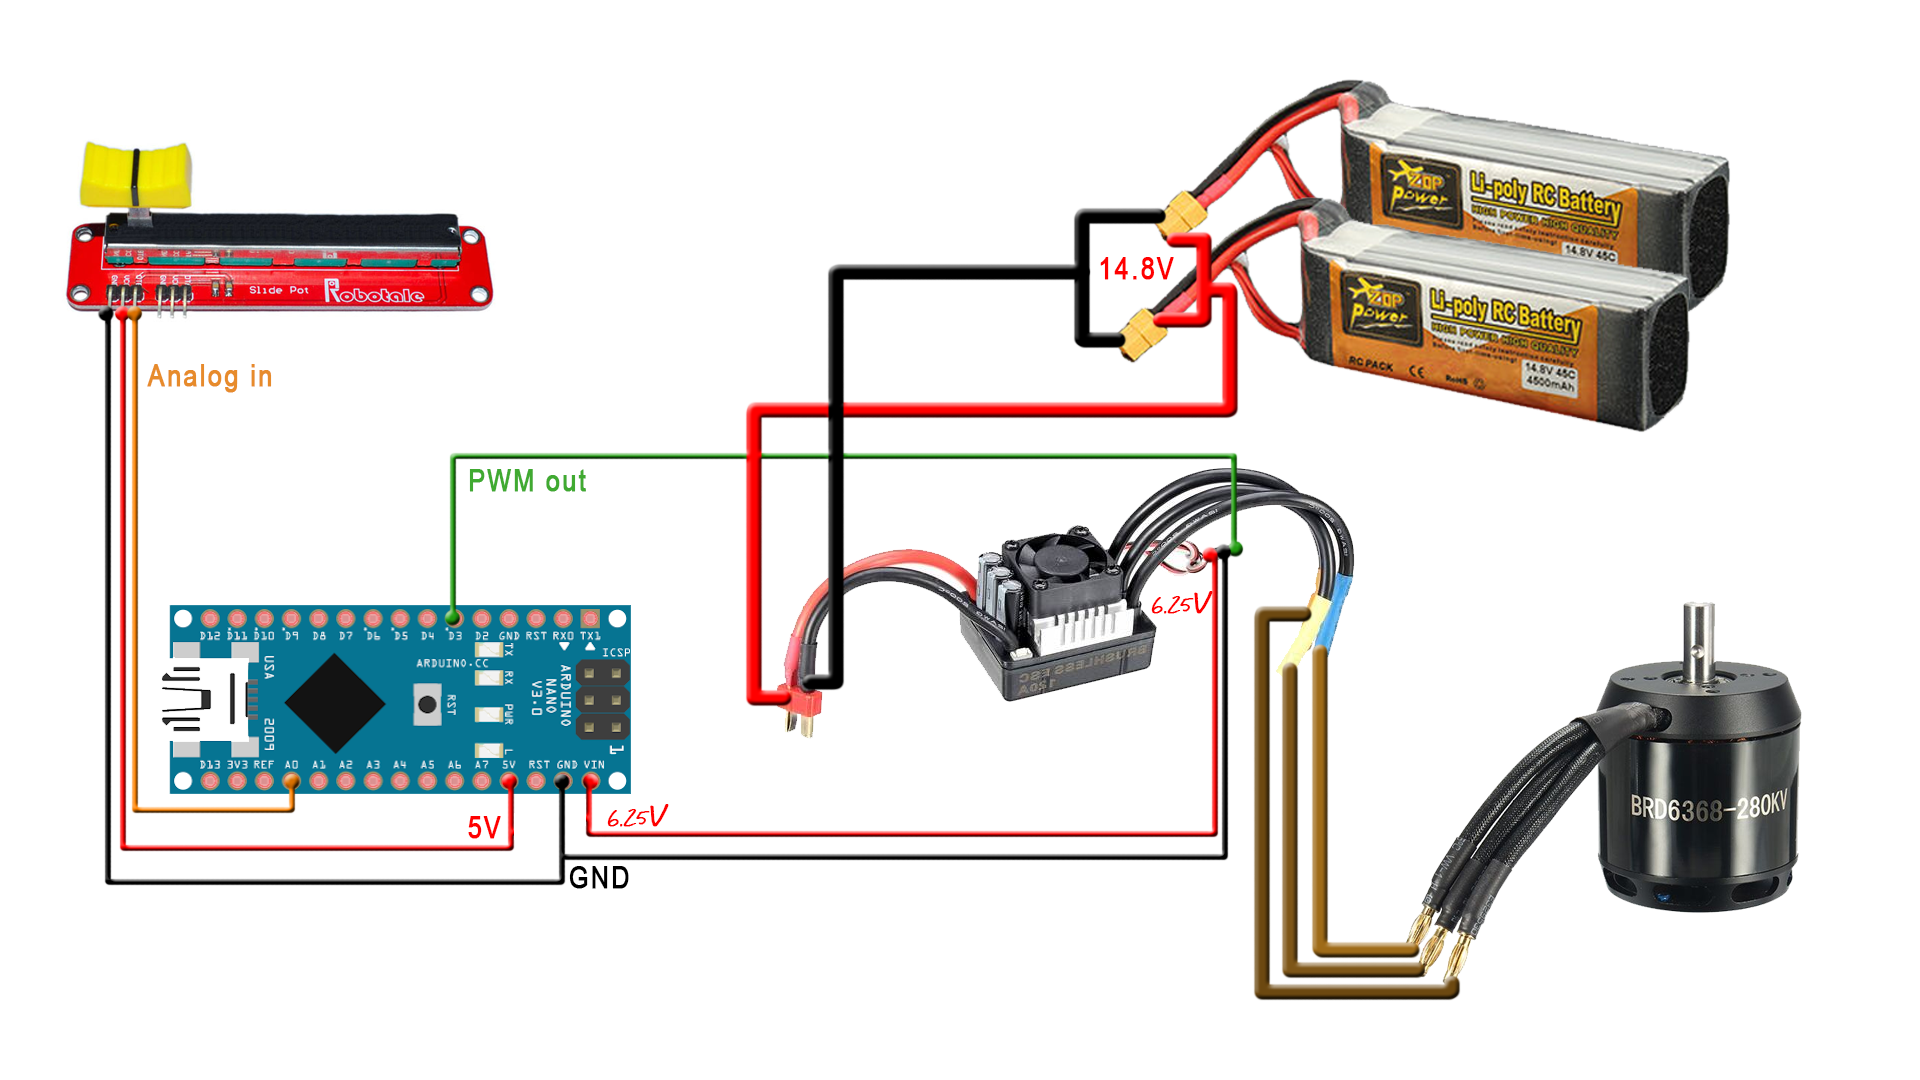 Electric Scooter Schematic Explained Wiring Diagrams Satellite Razor Diagram 12v Homemade Brushless Arduino Diy 24 Volt